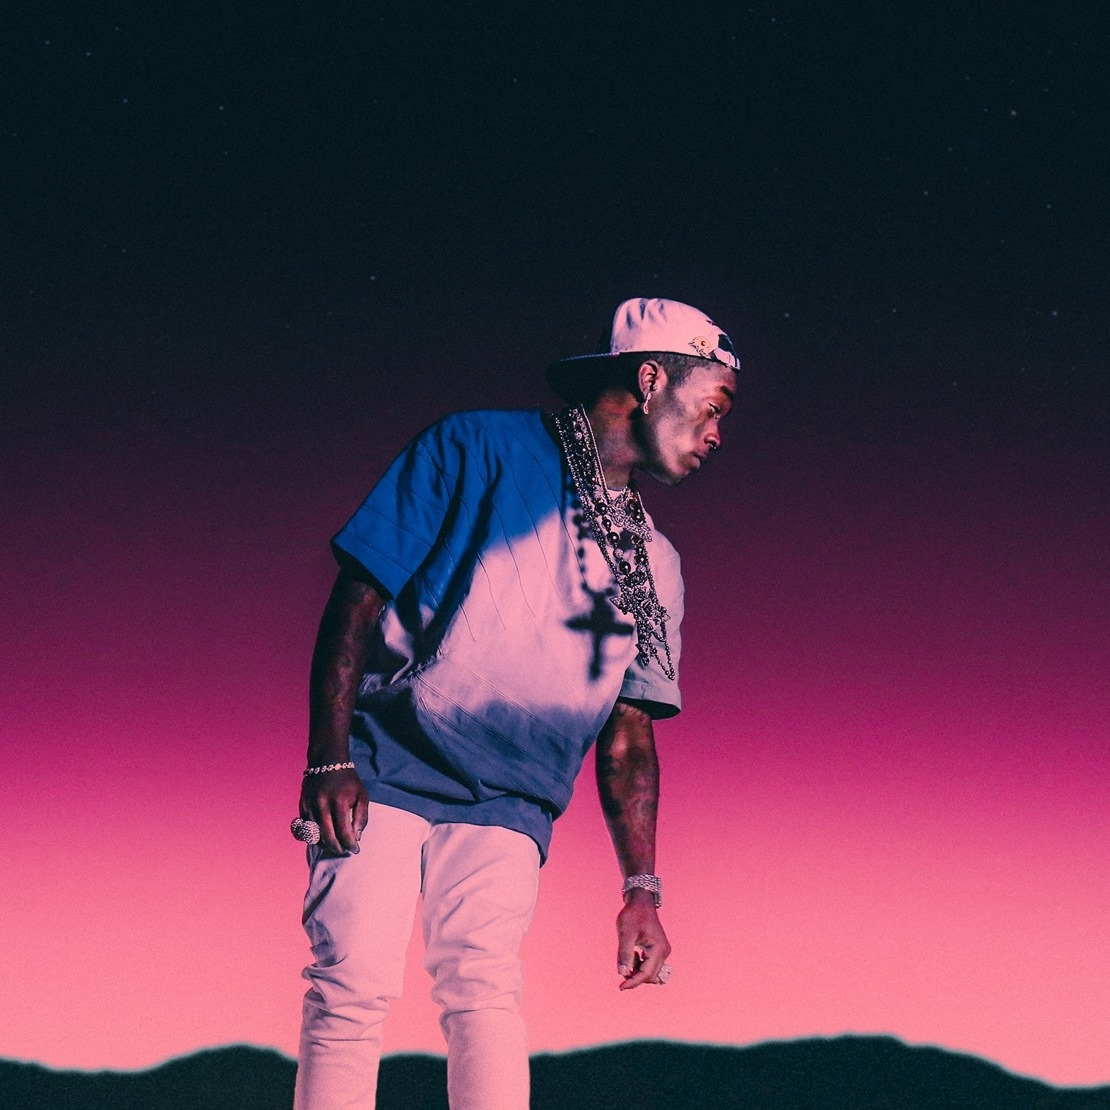 Lil Uzi Vert's 'Eternal Atake' debuts at No